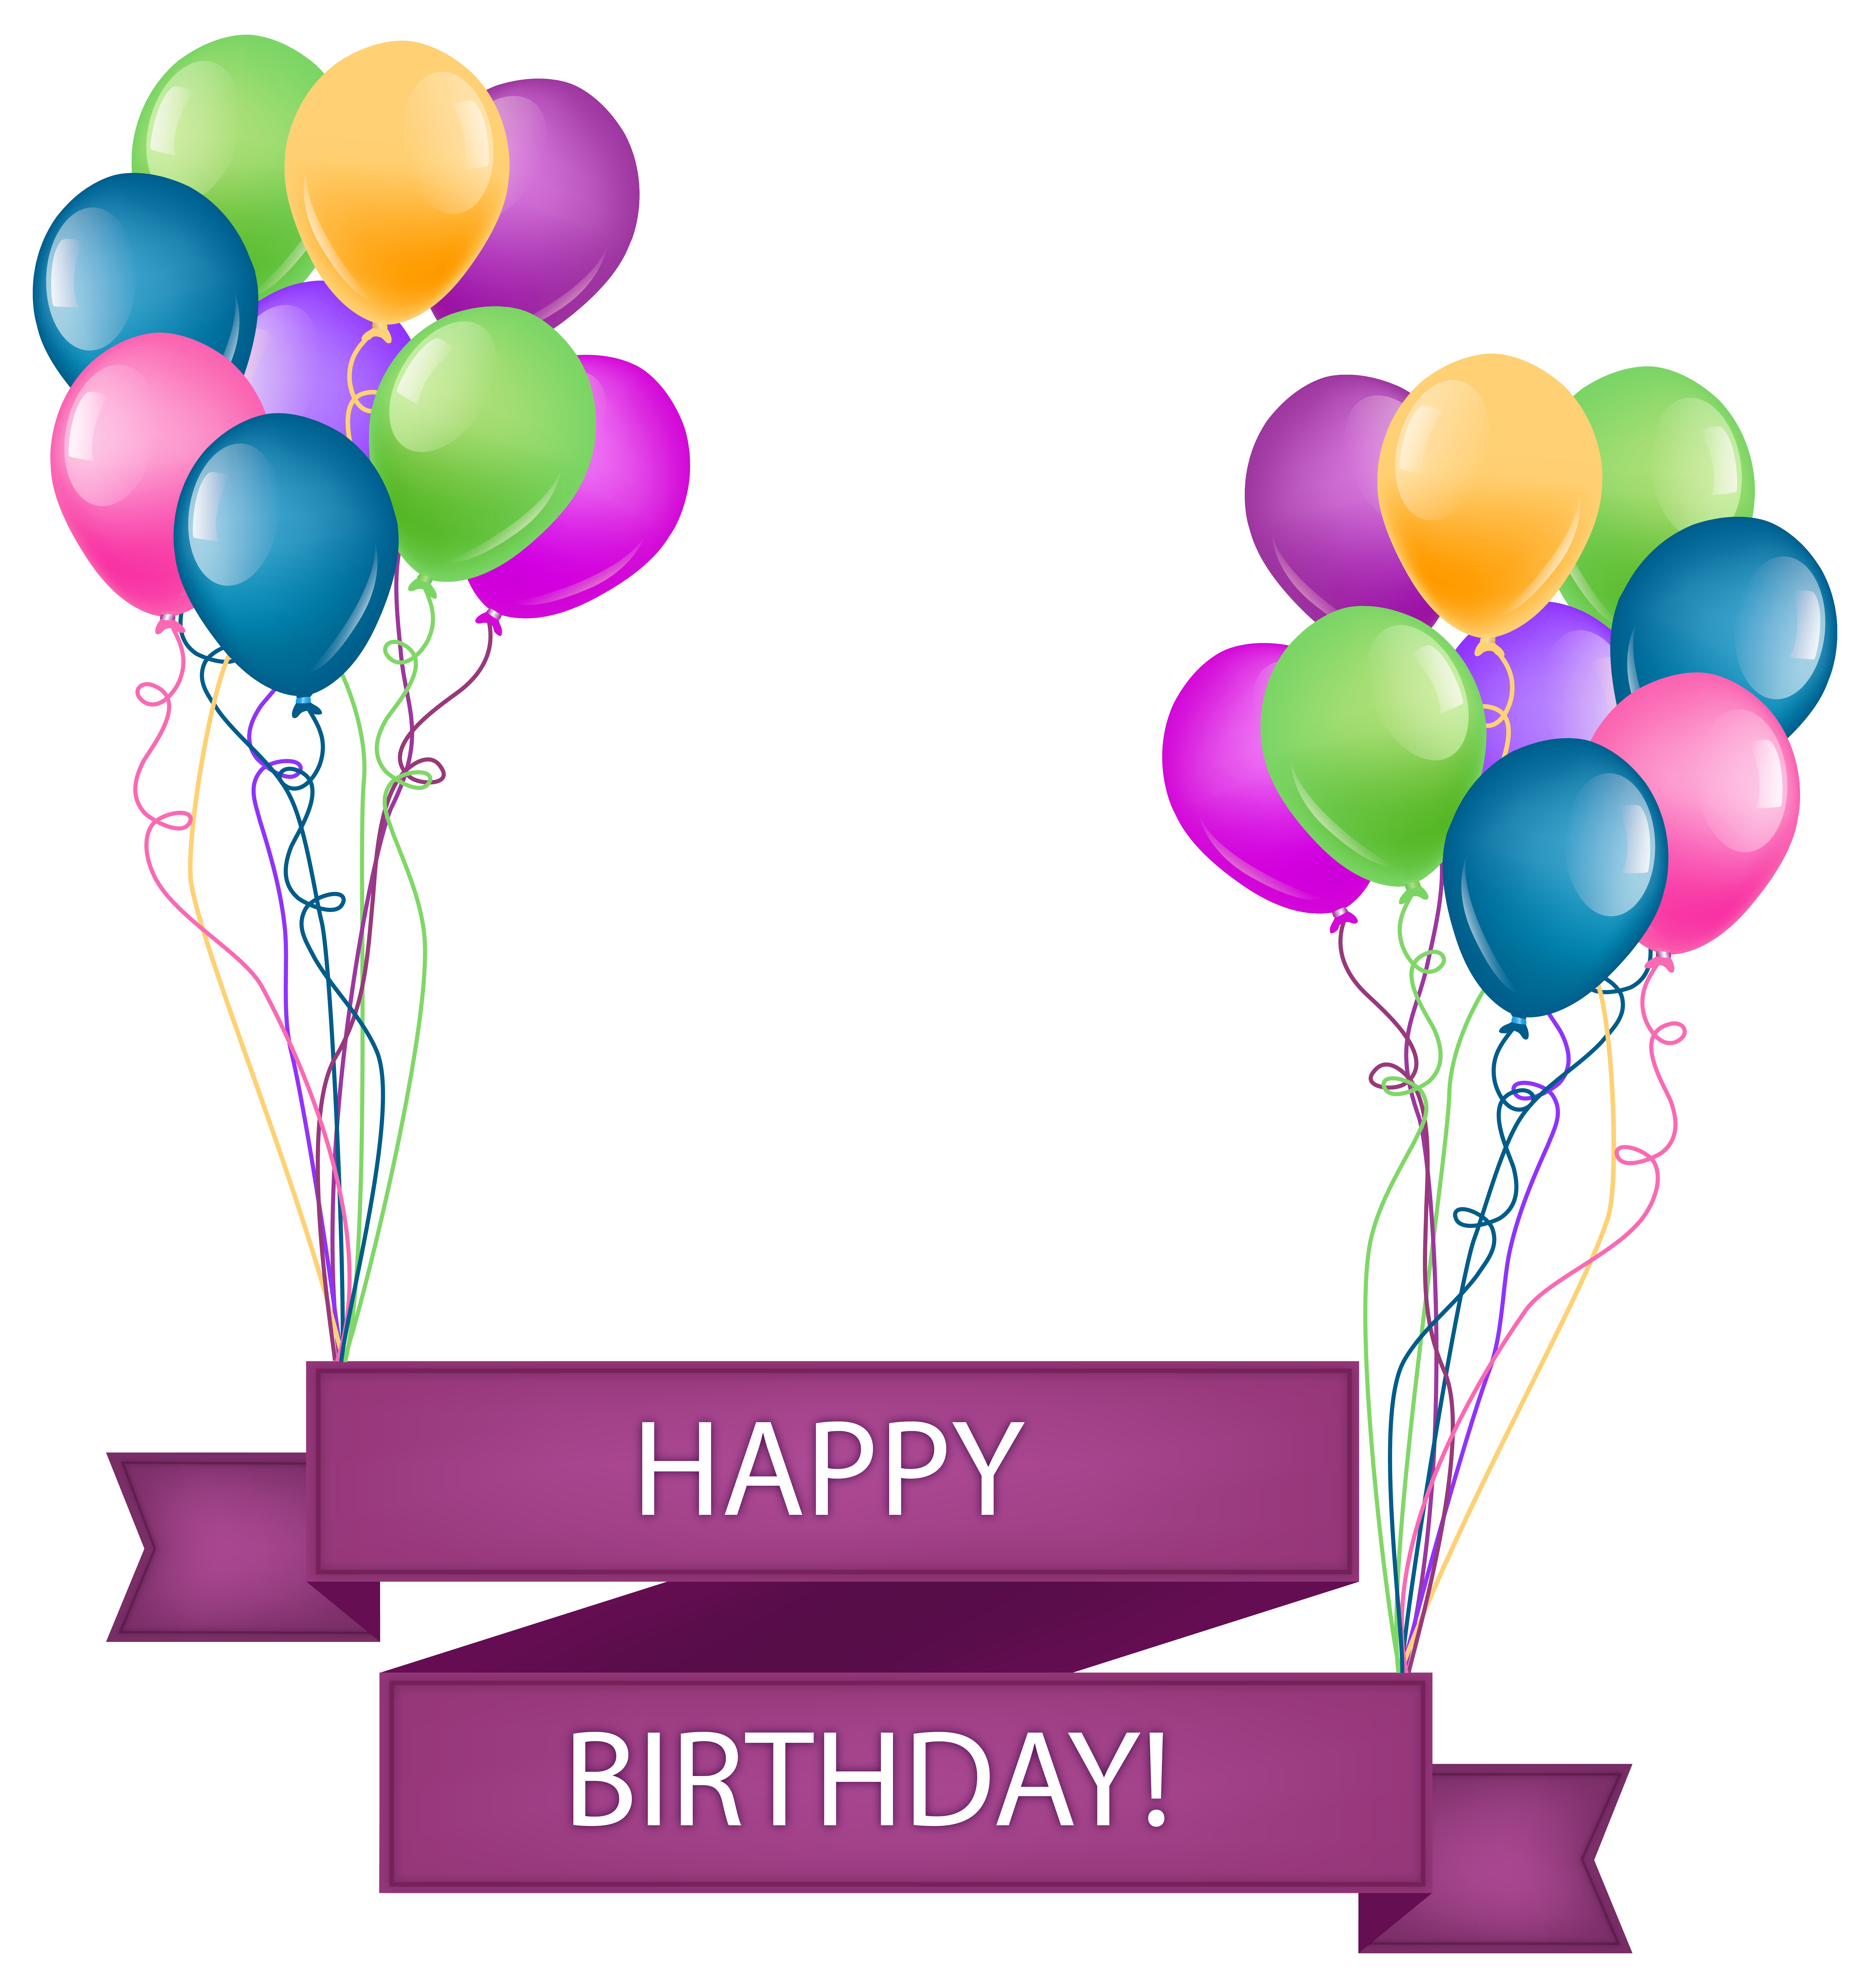 Happy 28th Birthday Png - Happy Birthday Party Pictures PNG Transparent Background, Free ...